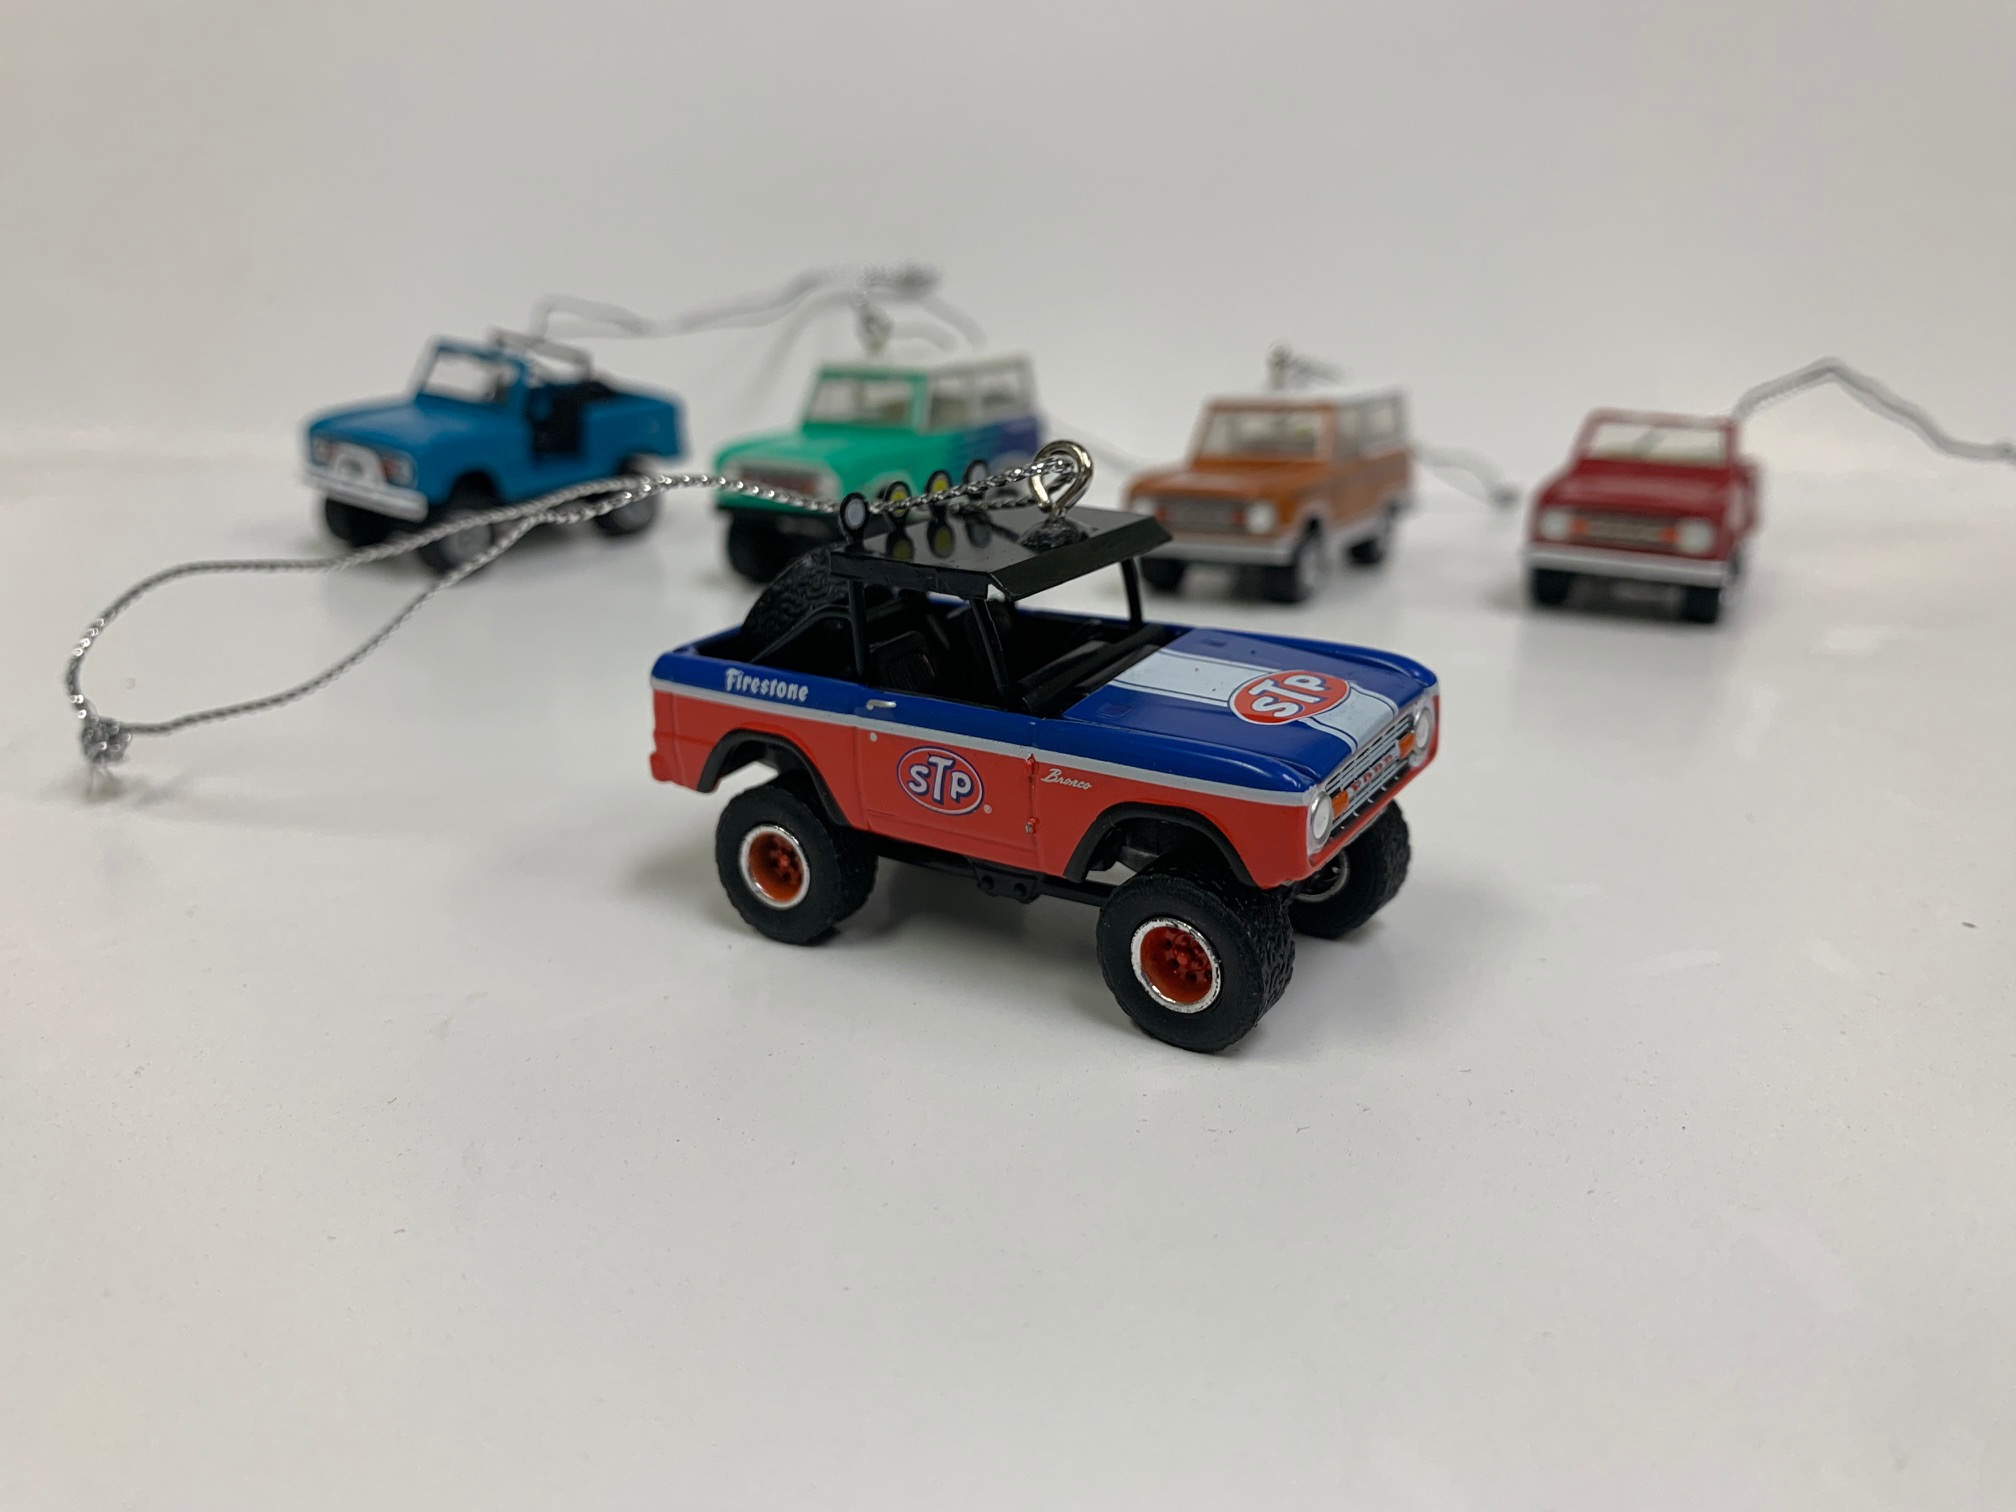 Christmas Ornament - 1975 Ford Bronco, ''STP'', 1:64 Die Cast